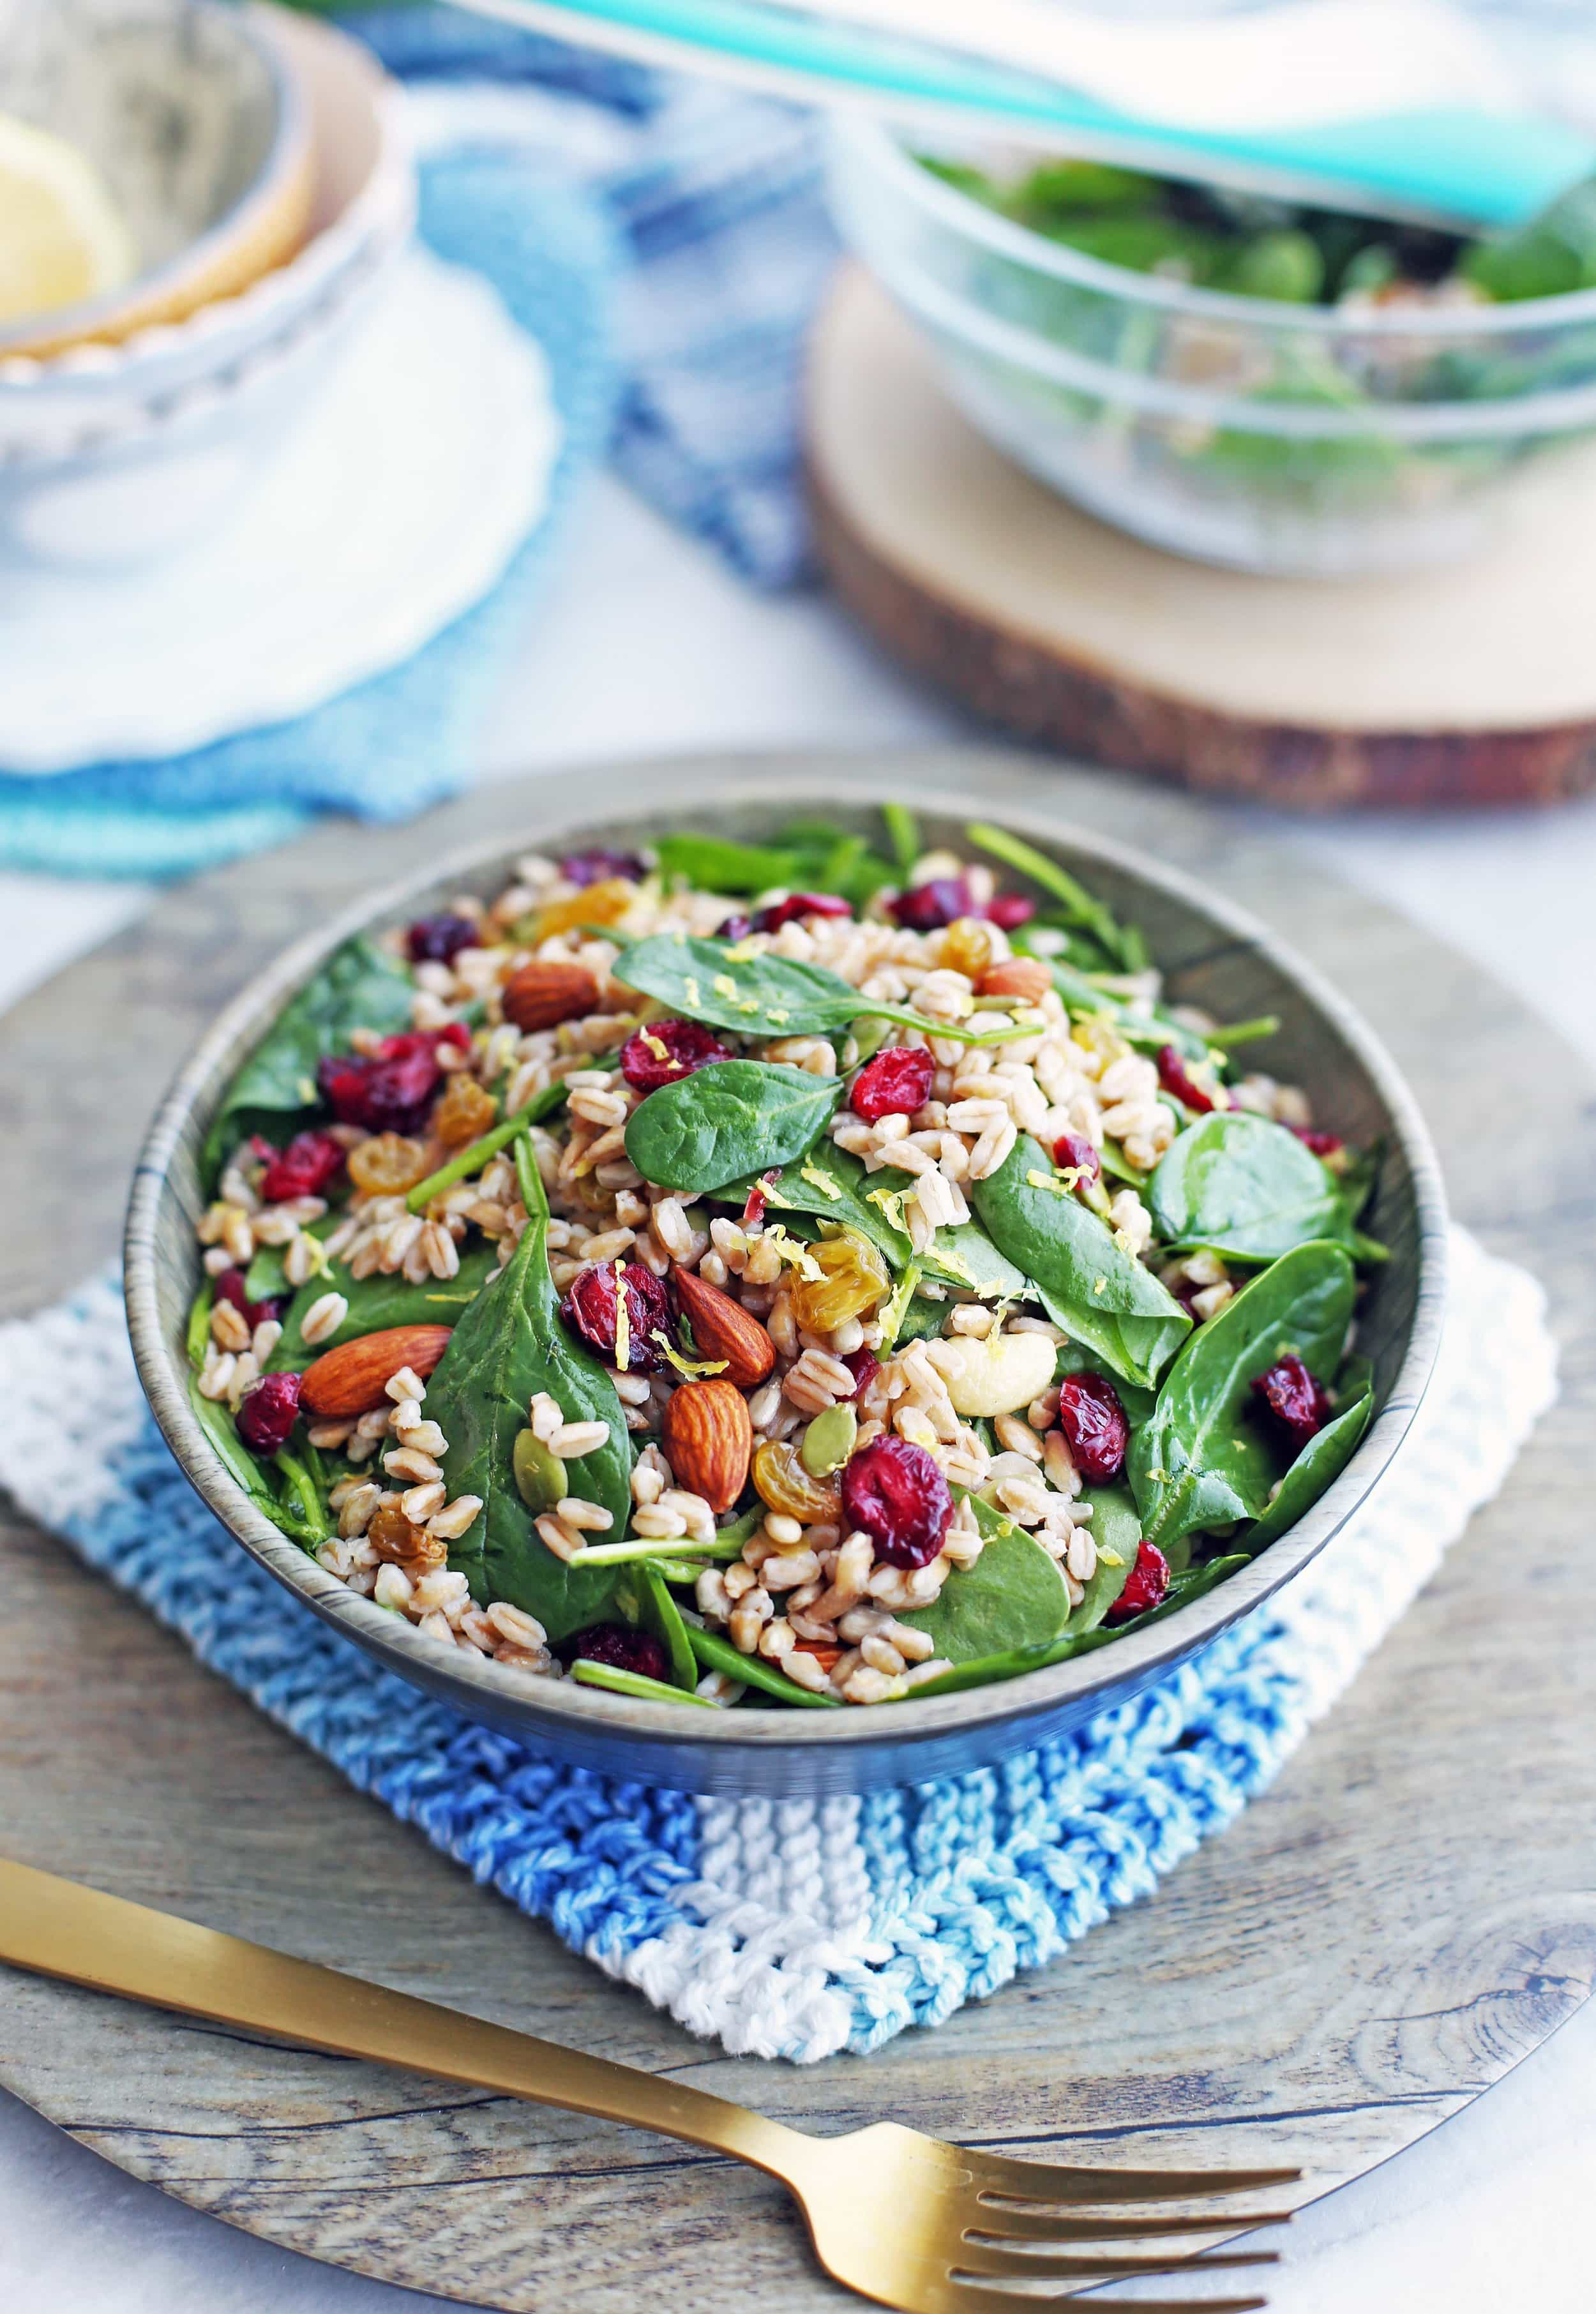 Farro and Spinach Salad with Dried Fruit and Nuts